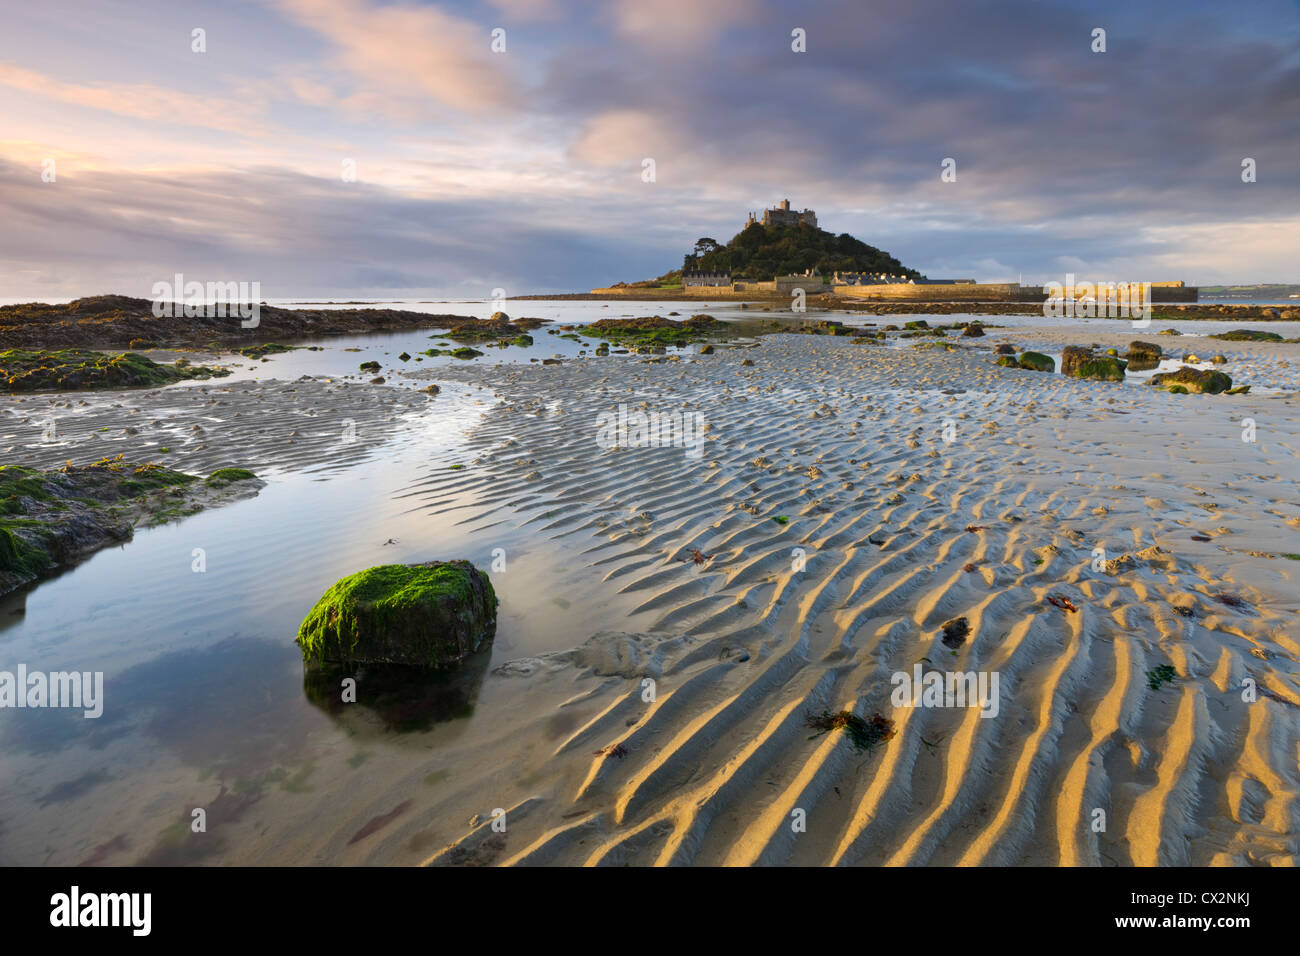 Marée basse sur Mounts Bay à la direction St Michaels Mount, Cornwall, Angleterre. L'automne (octobre) Photo Stock